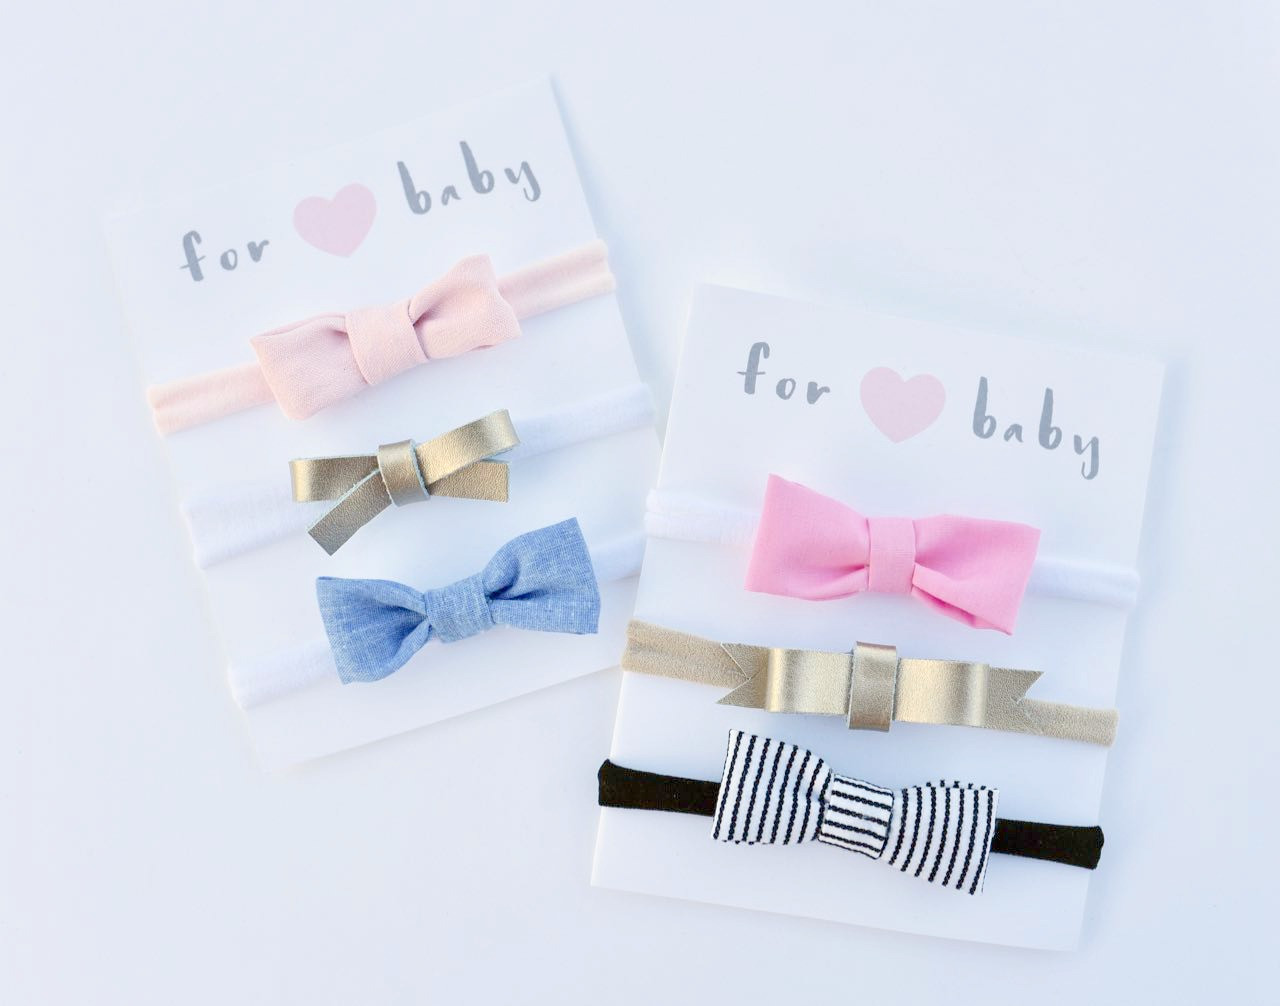 Best ideas about DIY Baby Hair Bows . Save or Pin Free Printable Hair Bow Cards for DIY Hair Bows and Now.